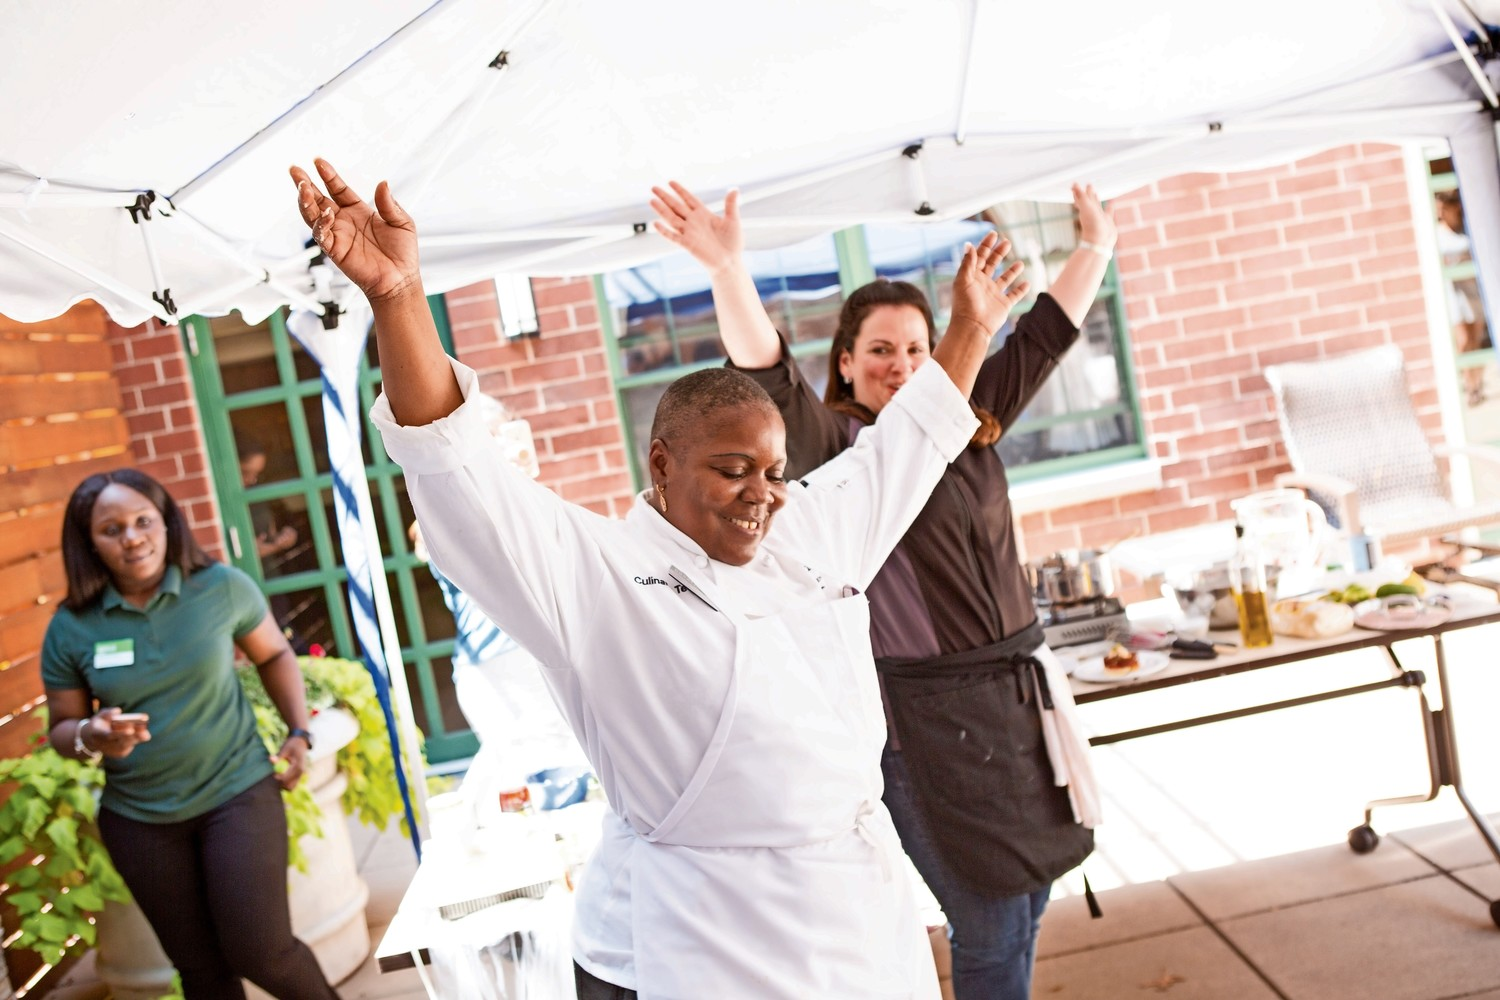 Atria chef Rosalind Craft and food blogger Rachel Berger hold up their hands to show that they have finished cooking at the conclusion of Atria's Chef Showdown. The cooking competition returns to Atria for its third installment on July 17.